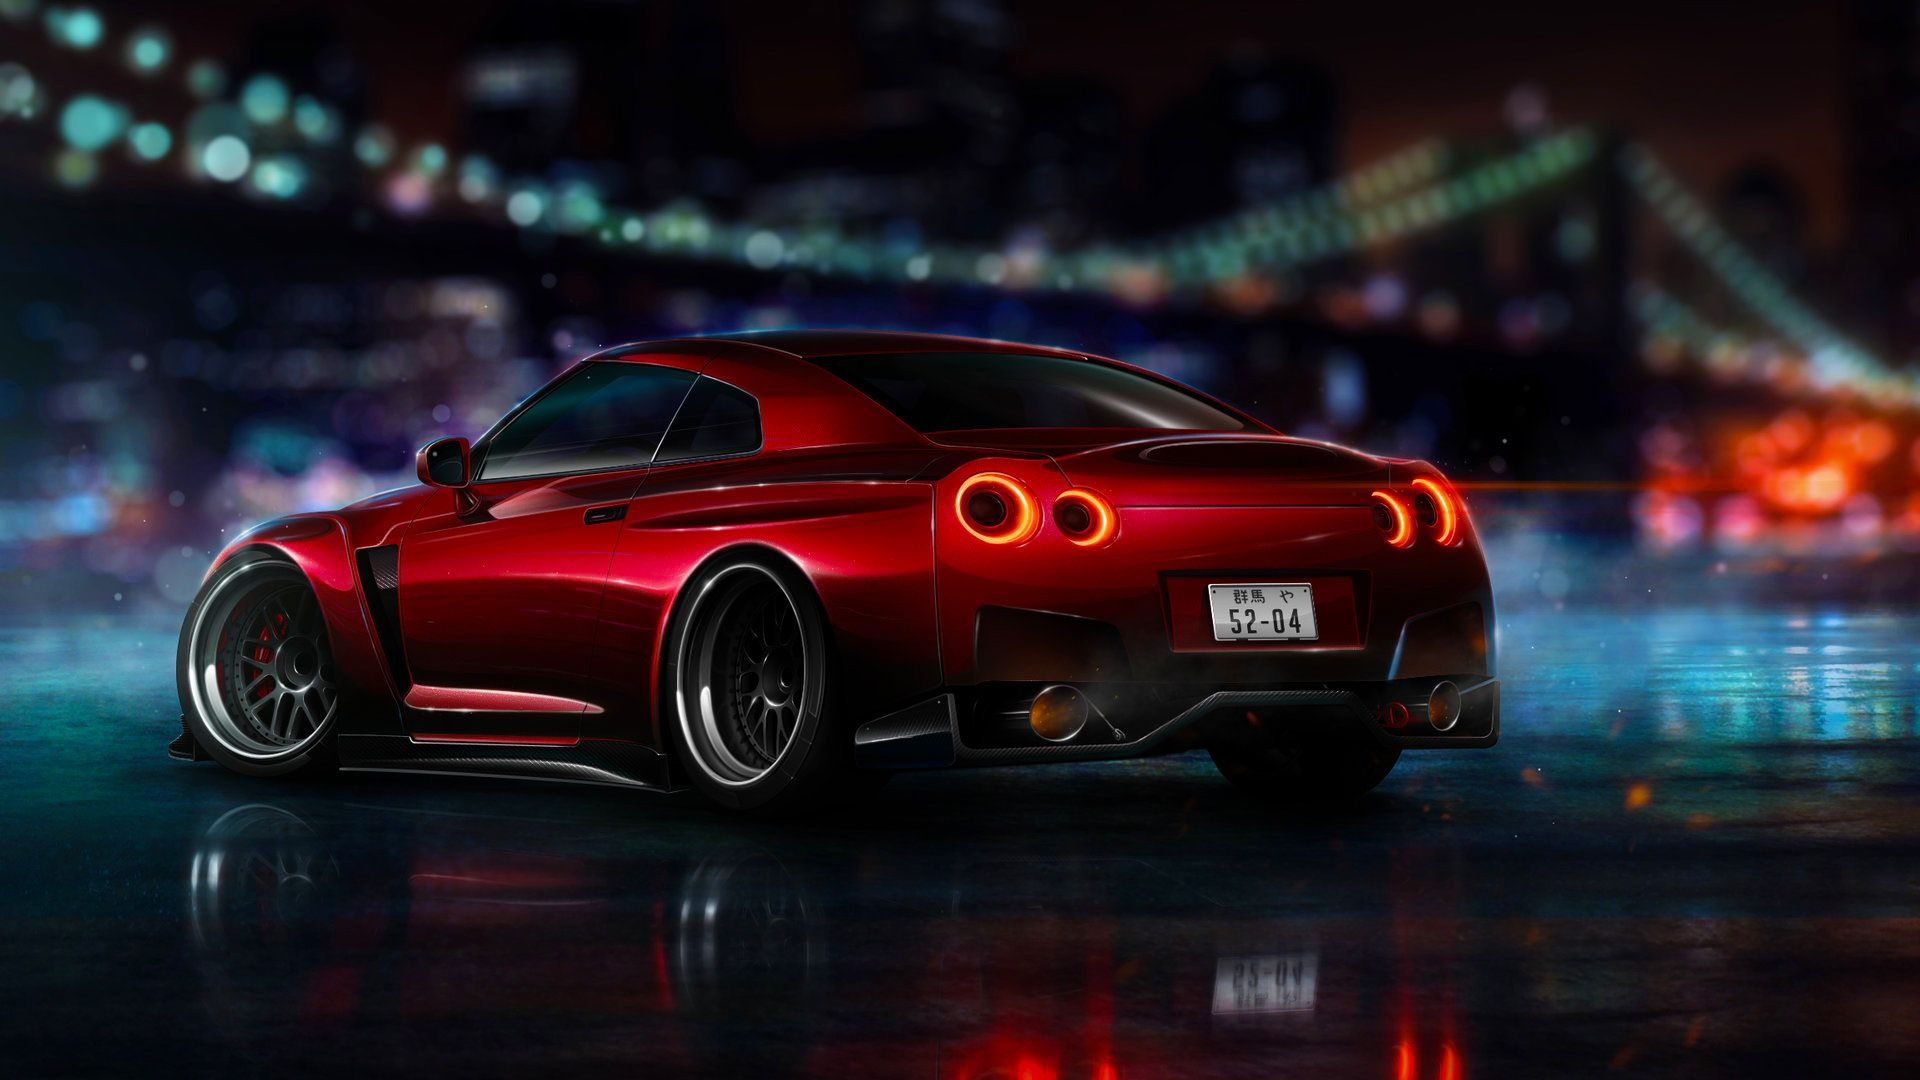 Marvelous Gtr Wallpaper Nissan Gtr R Wallpapers Hd Wallpaper